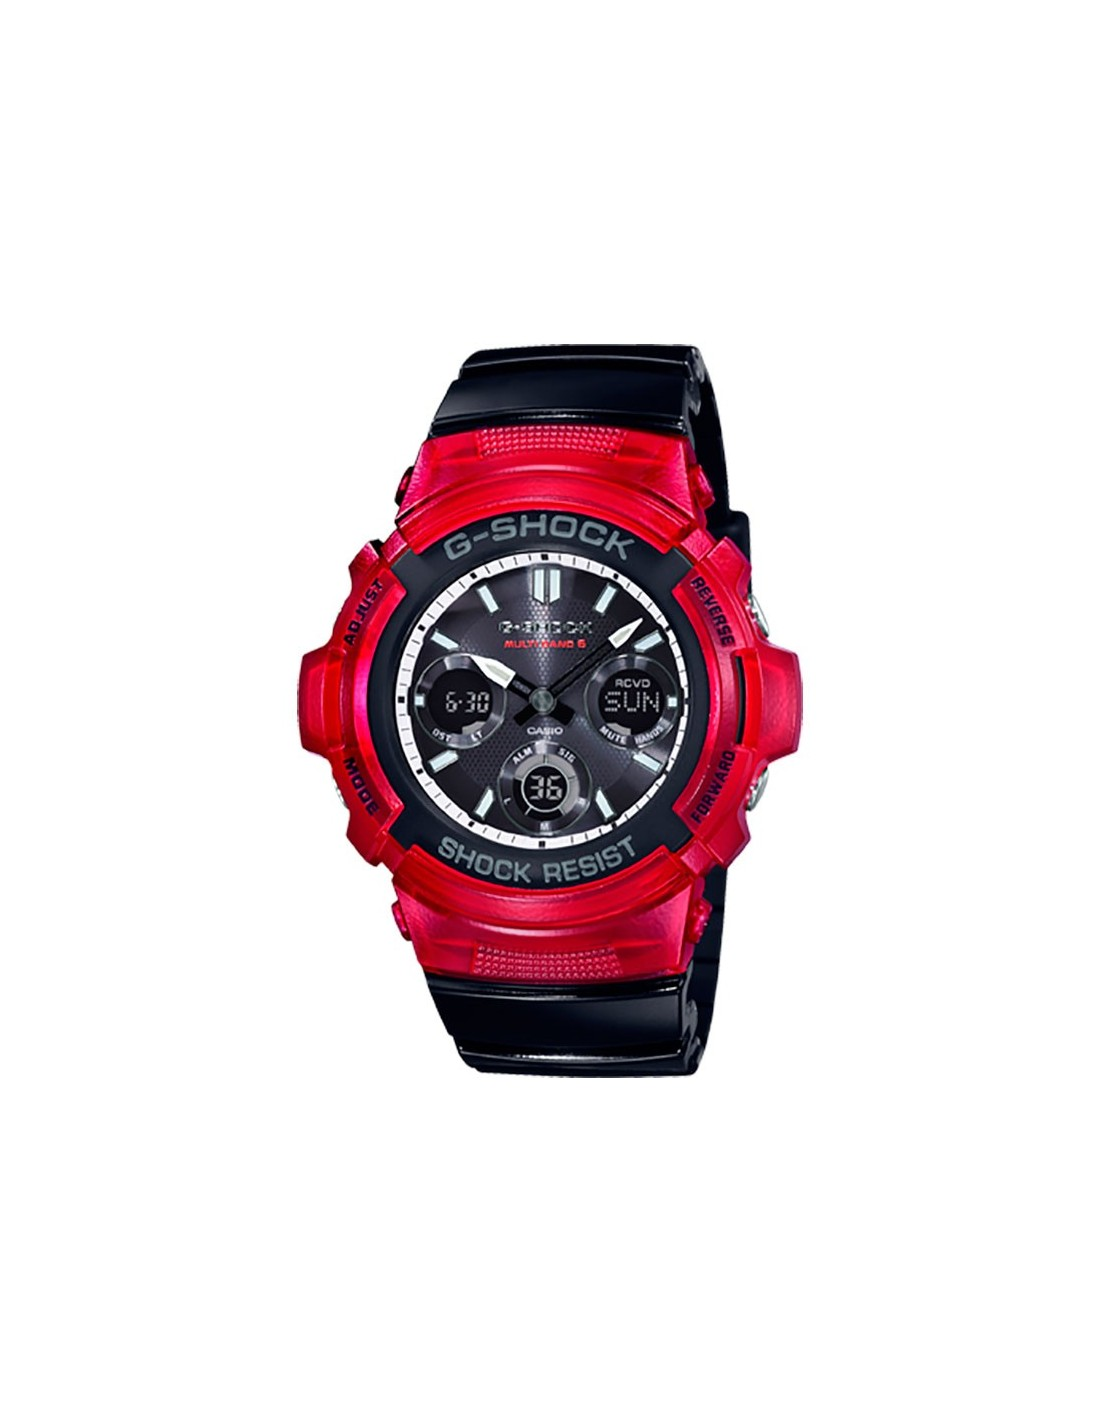 Awg M100srb 4aer Casio Watch G Shock G Shock Black And Red